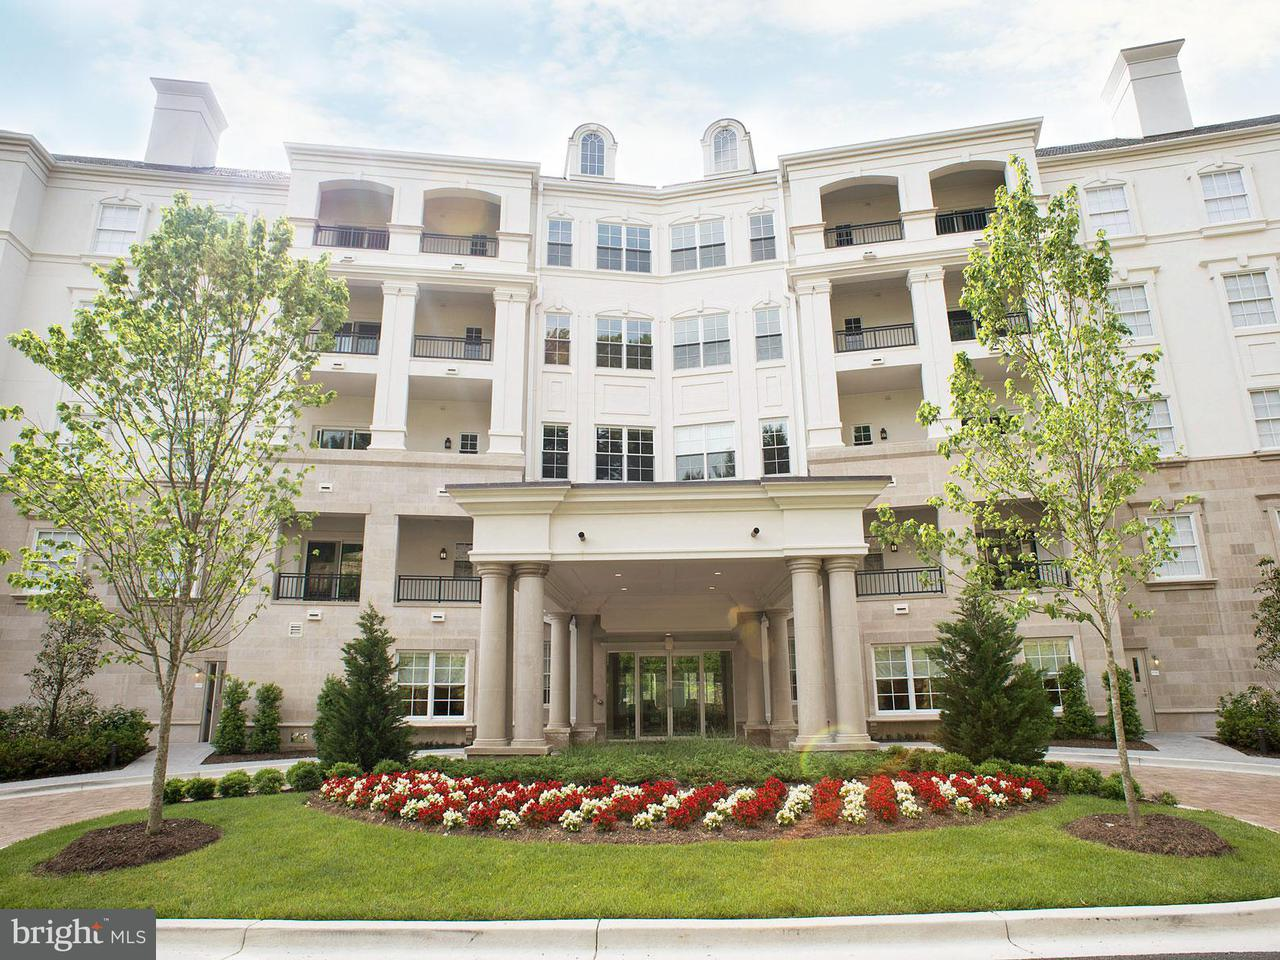 Single Family Home for Sale at 8111 RIVER RD #121 8111 RIVER RD #121 Bethesda, Maryland 20817 United States